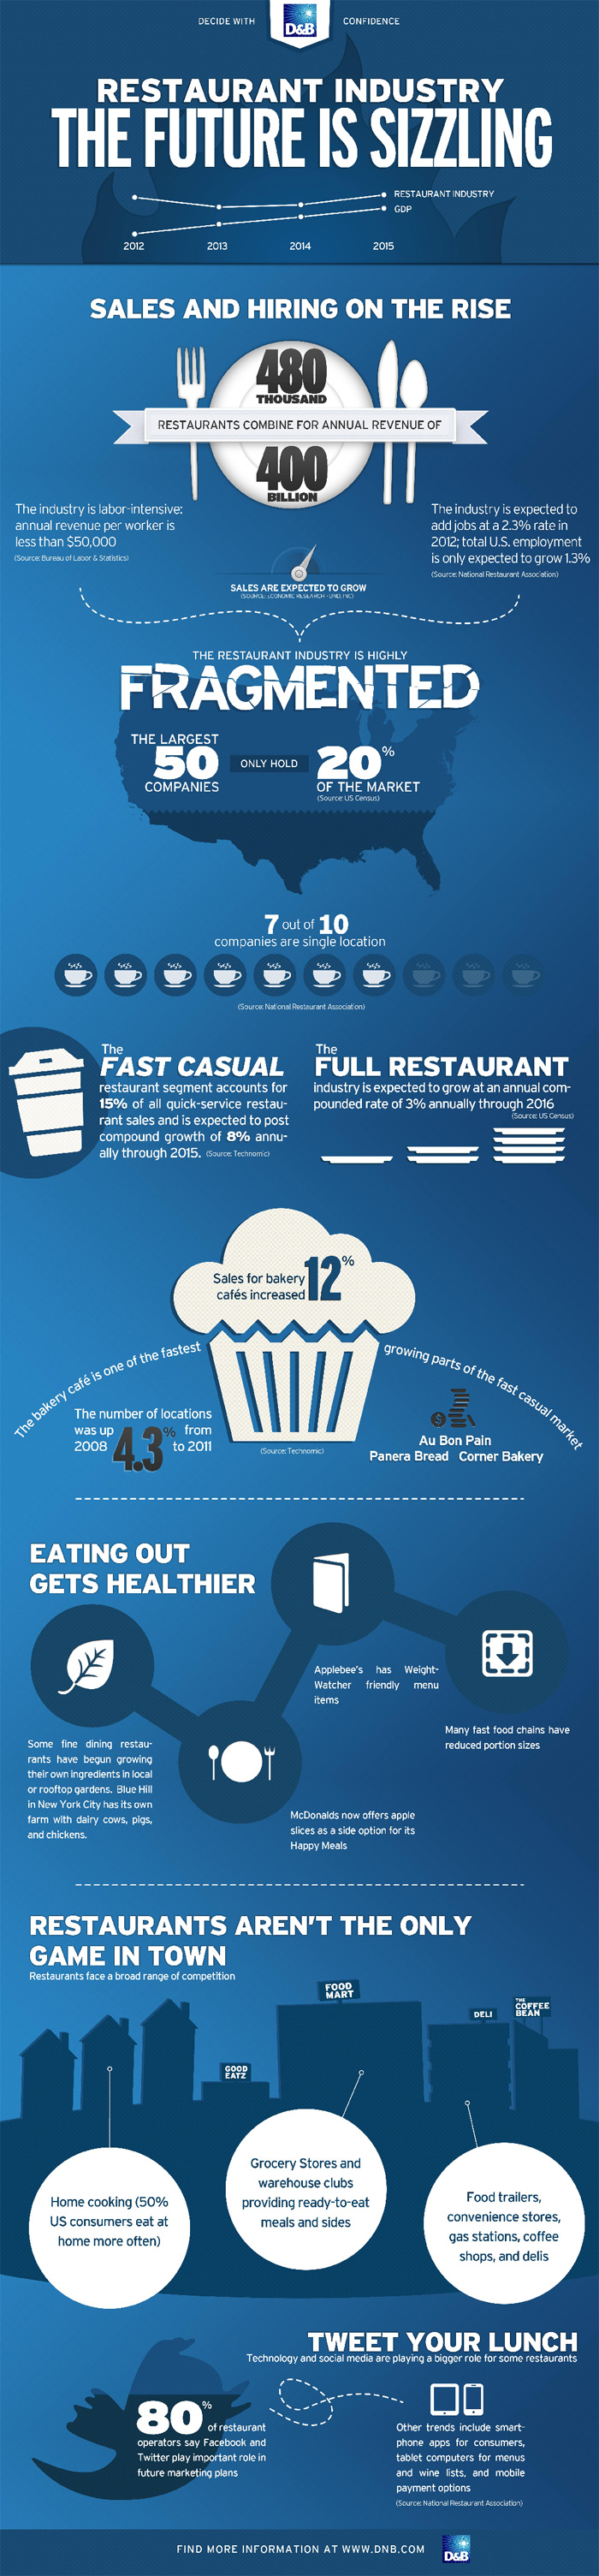 Restaurant- Industry Facts